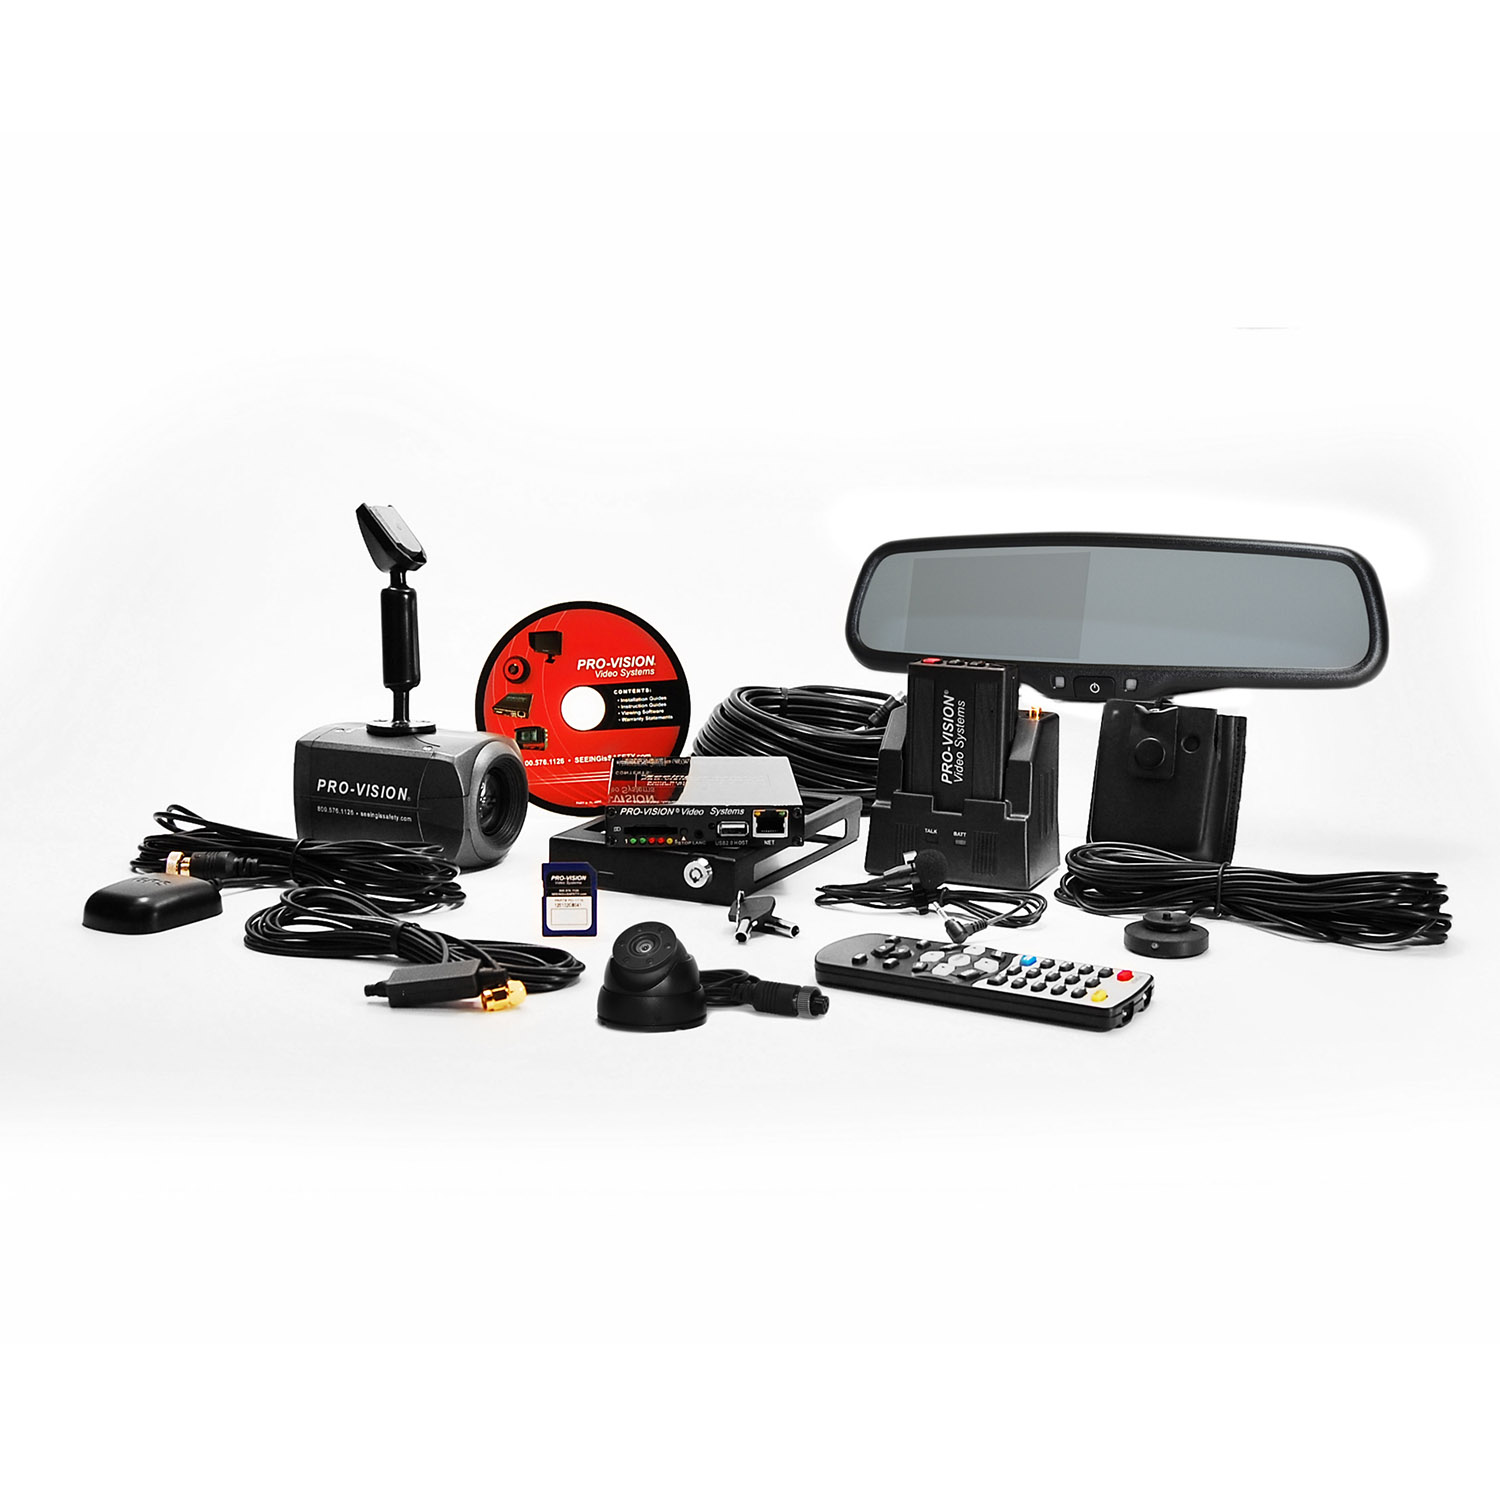 Pro Vision Solid State In Car Video System 2 cameras with mi